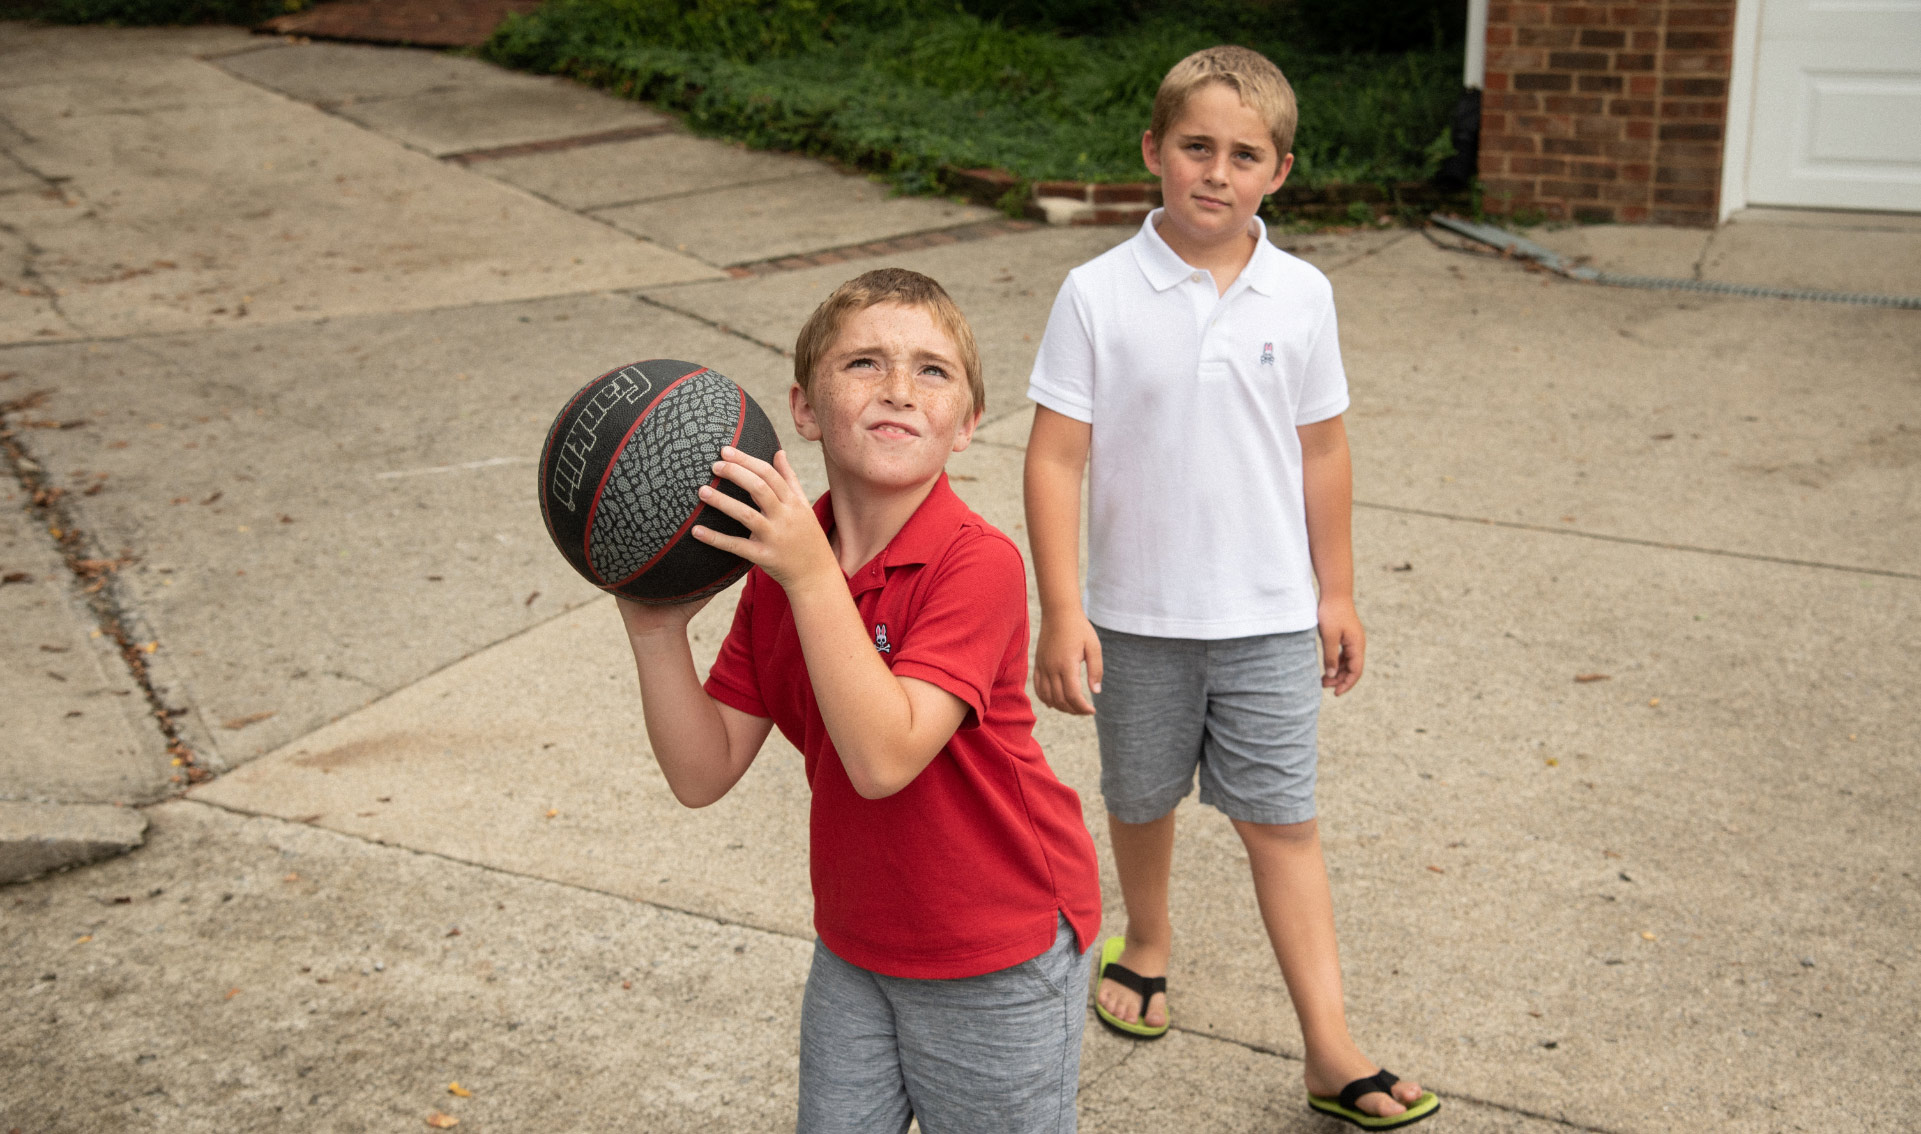 Max and his twin brother play basketball. Max is holding the ball and squinting up at the net, ready to shoot.